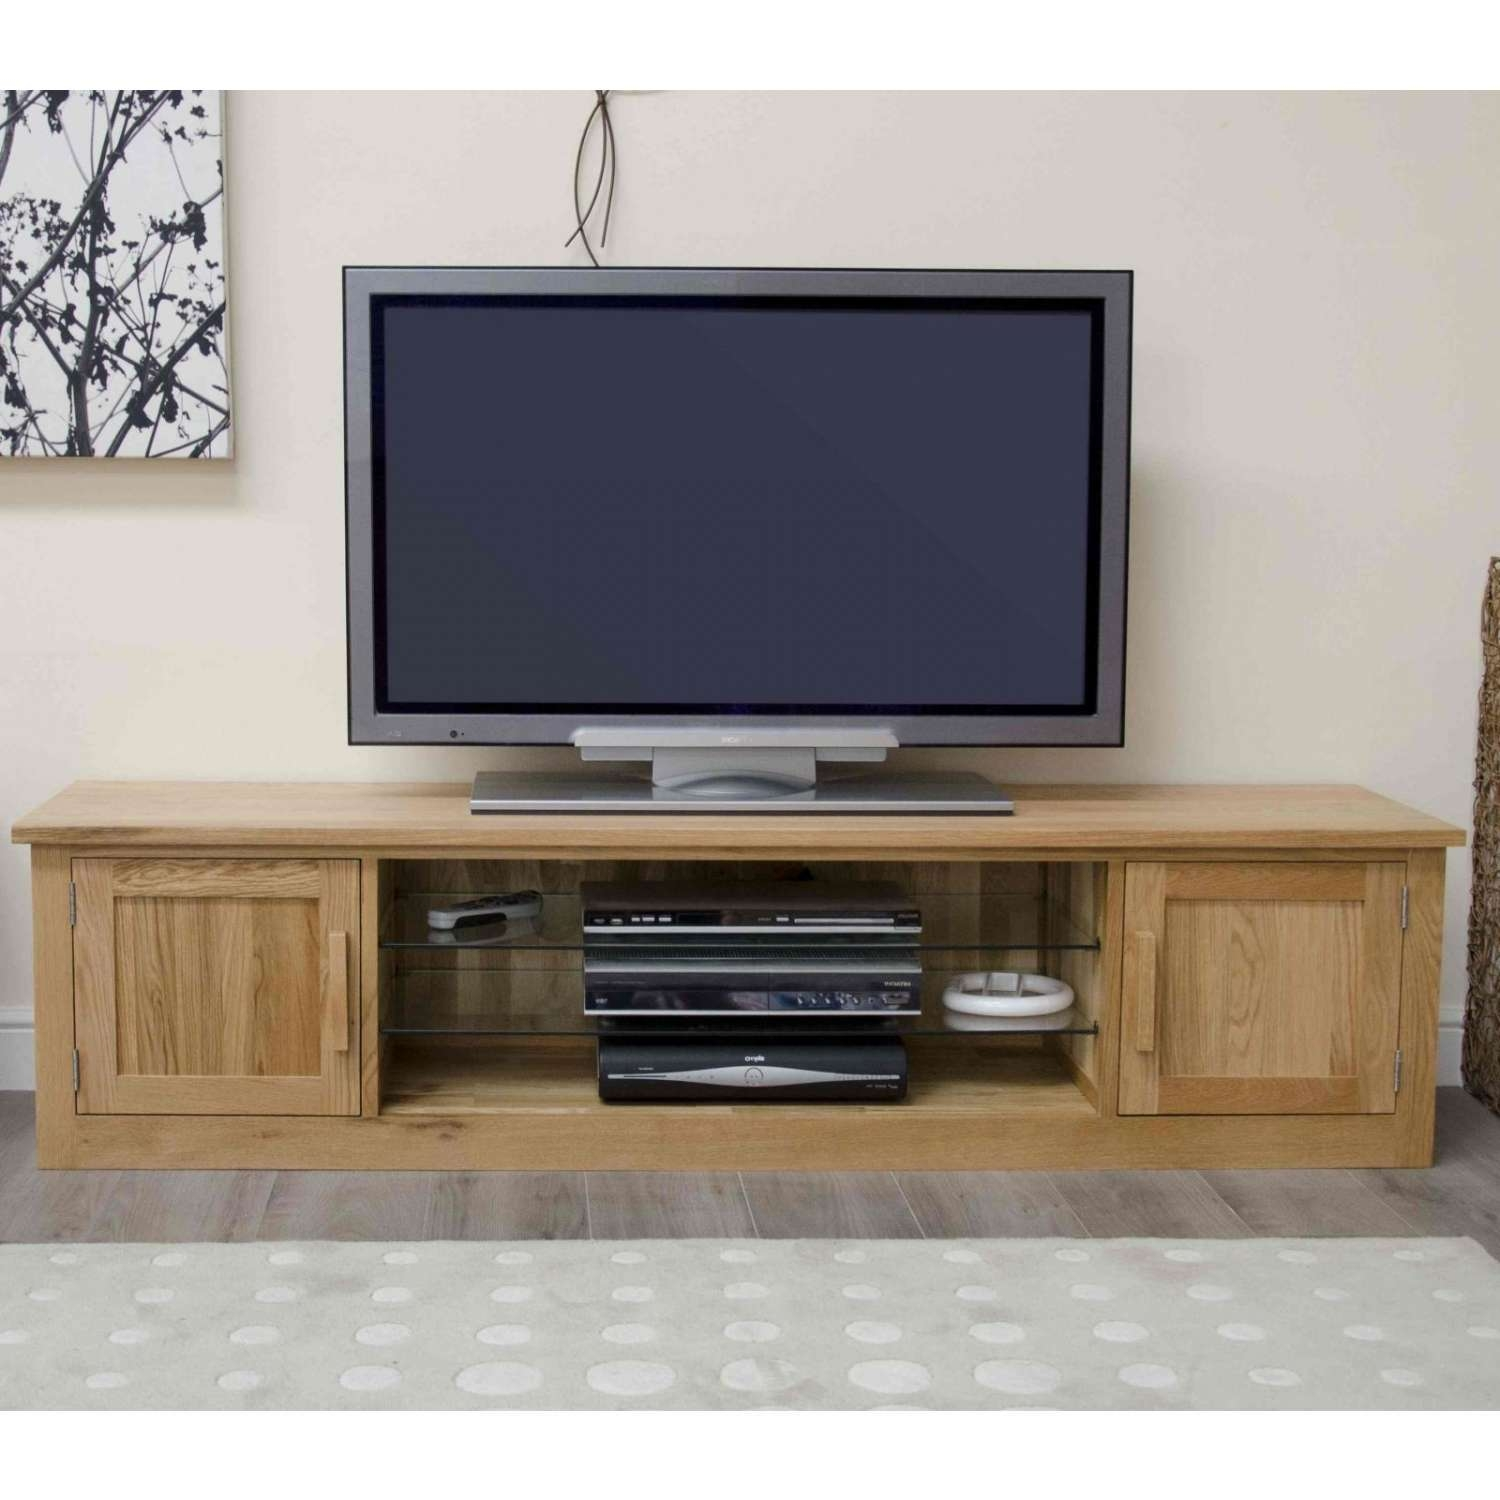 Arden Solid Oak Living Room Furniture Large Widescreen Tv Cabinet Inside Rustic Oak Tv Stands (View 1 of 15)